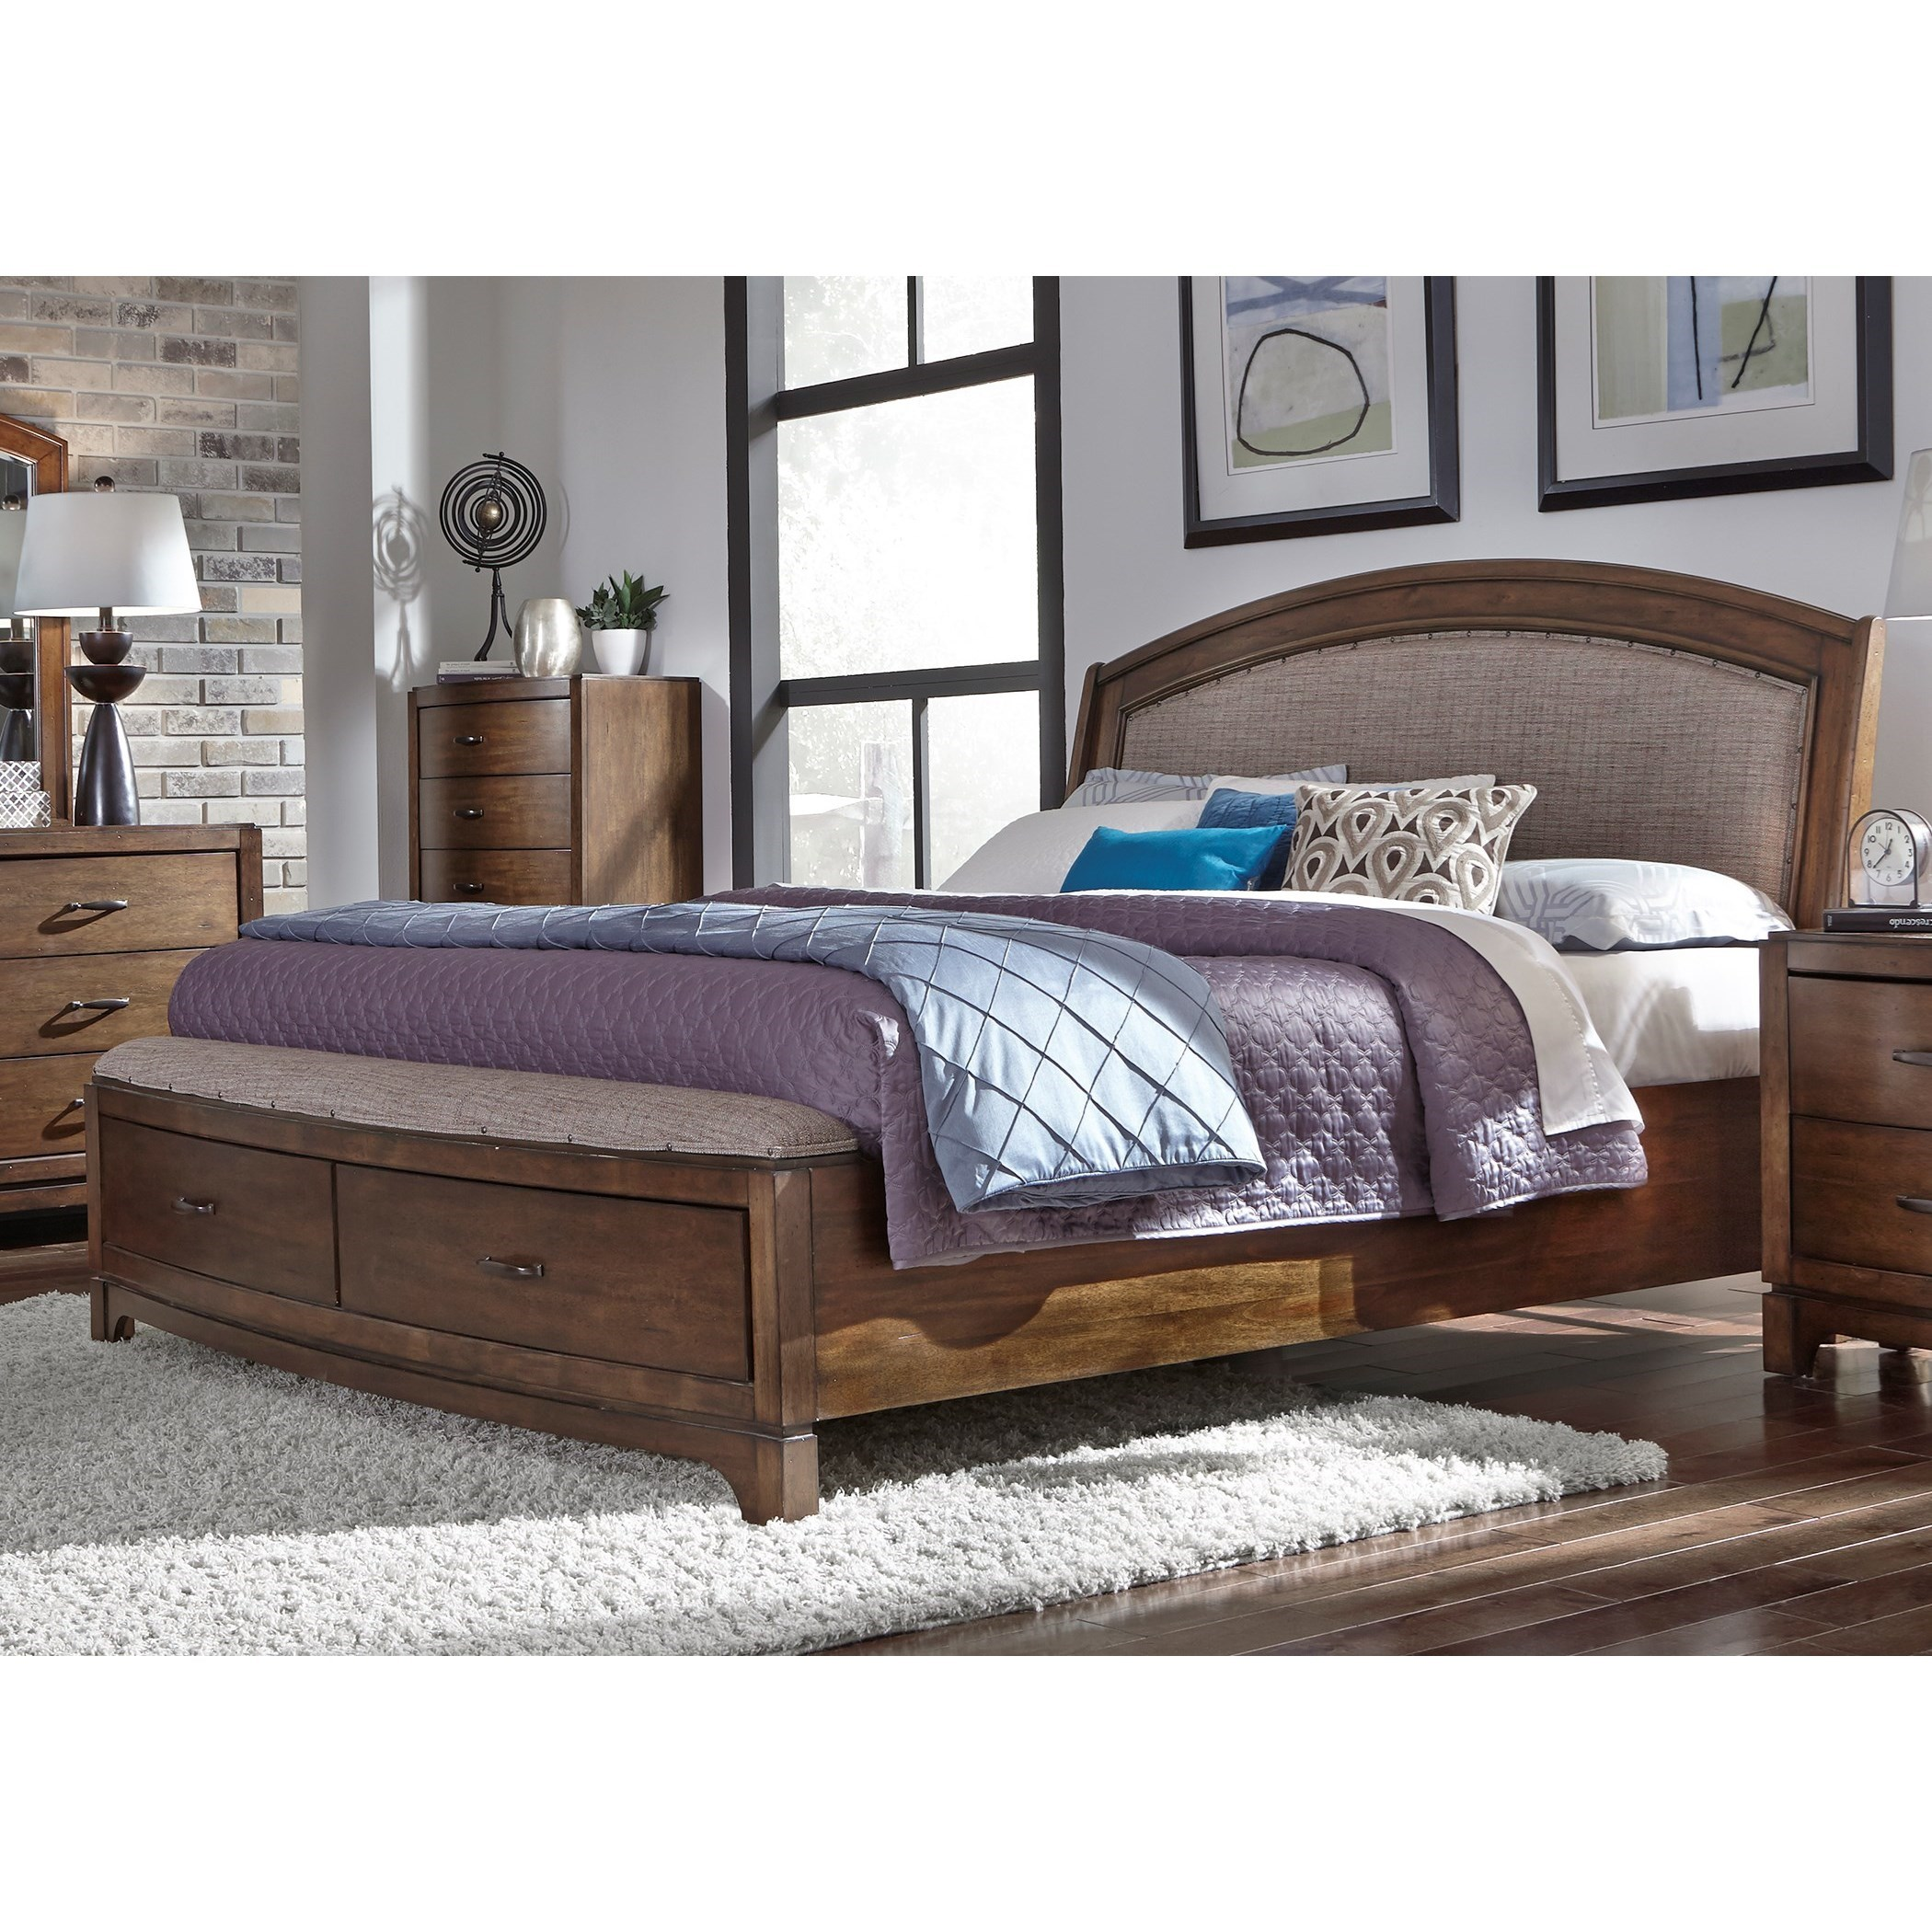 King Storage Bed with Upholstered Headboard